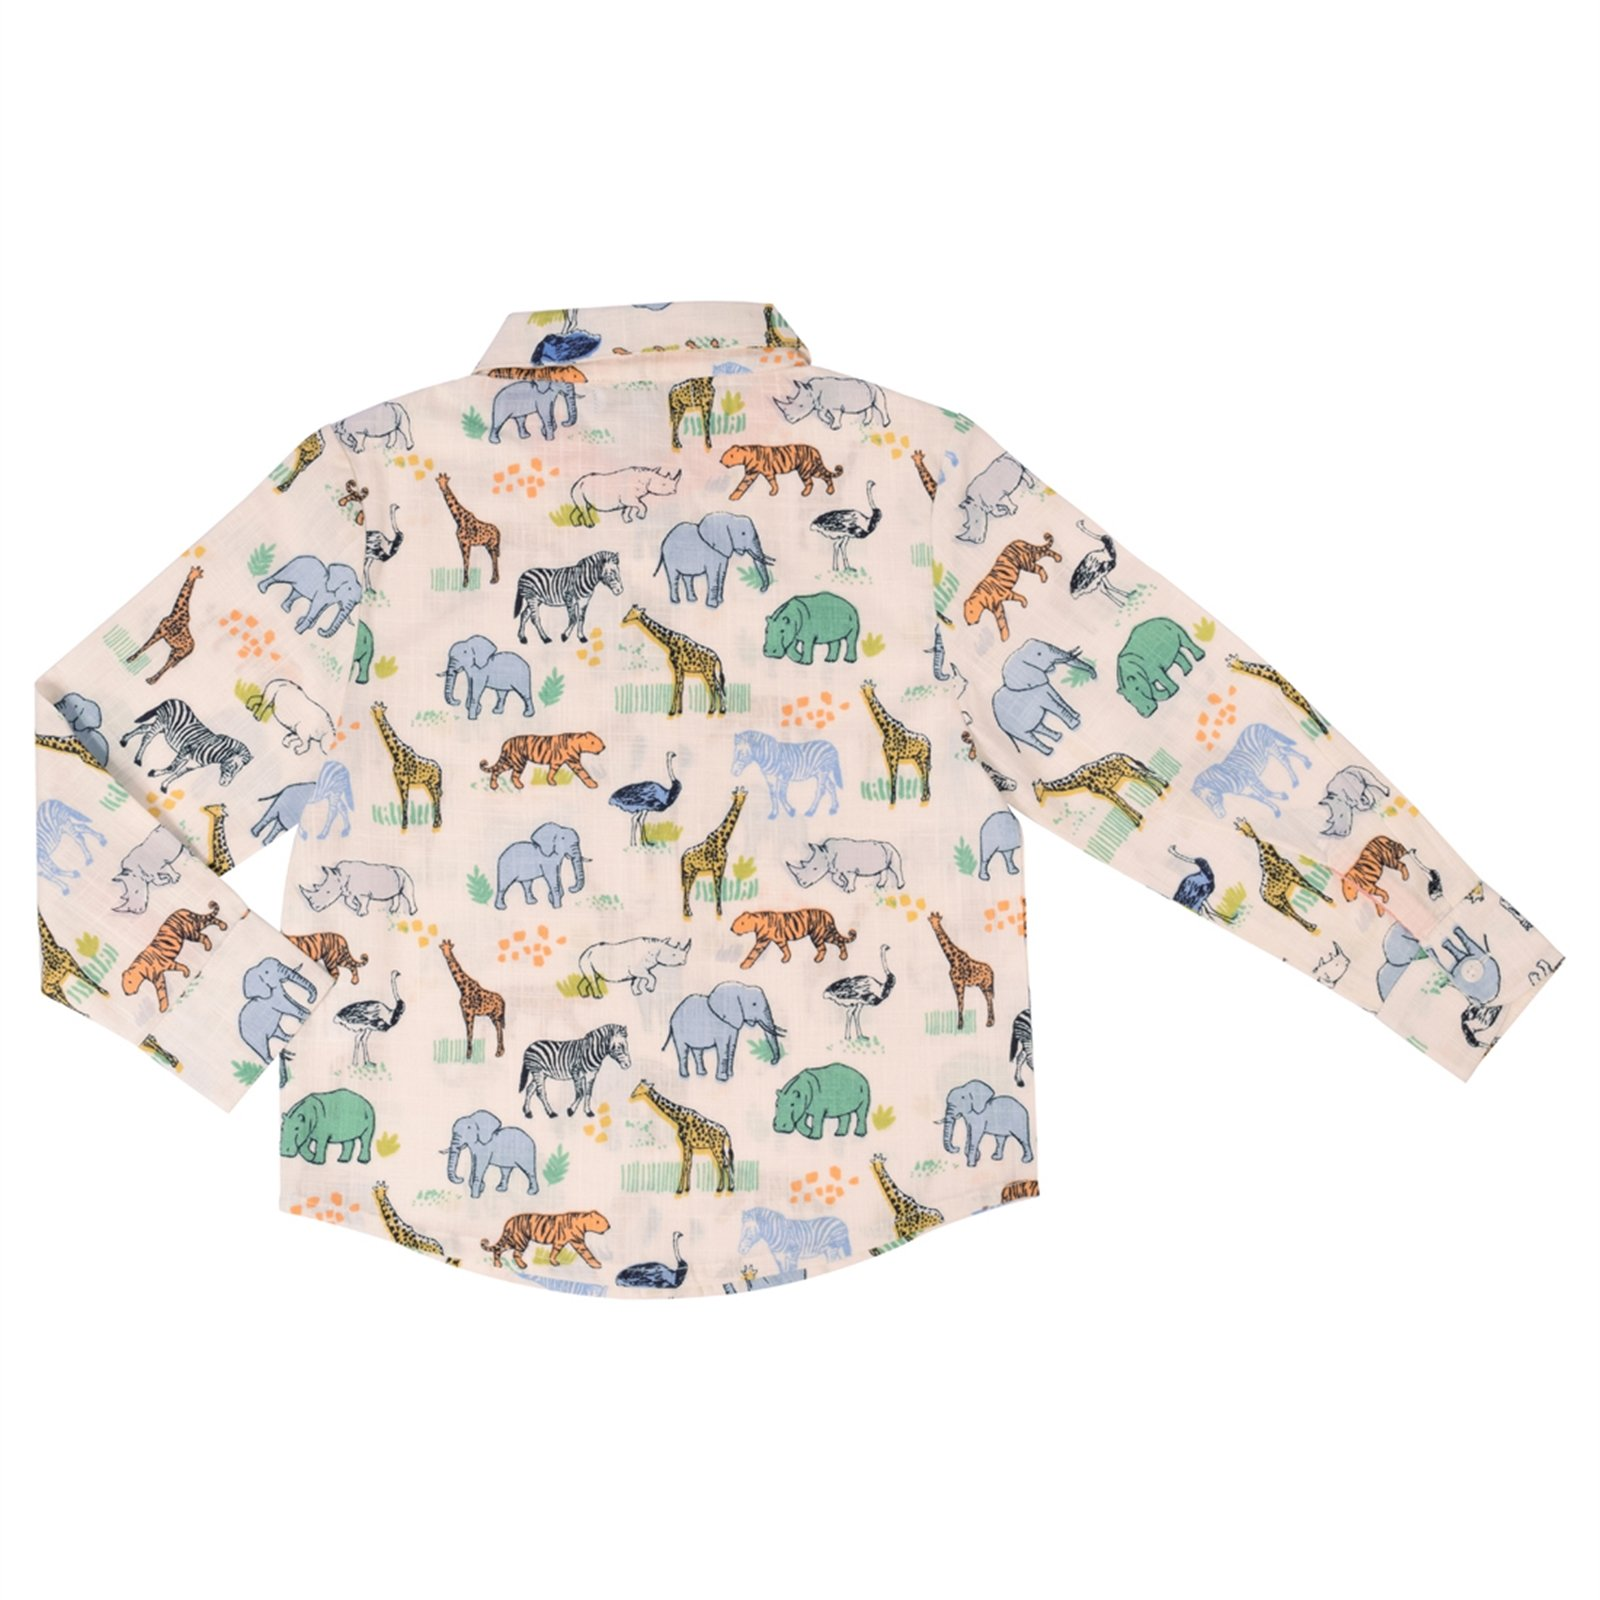 CrayonFlakes Offwhite Shirt in 100% Cotton with Colorful Animal Print